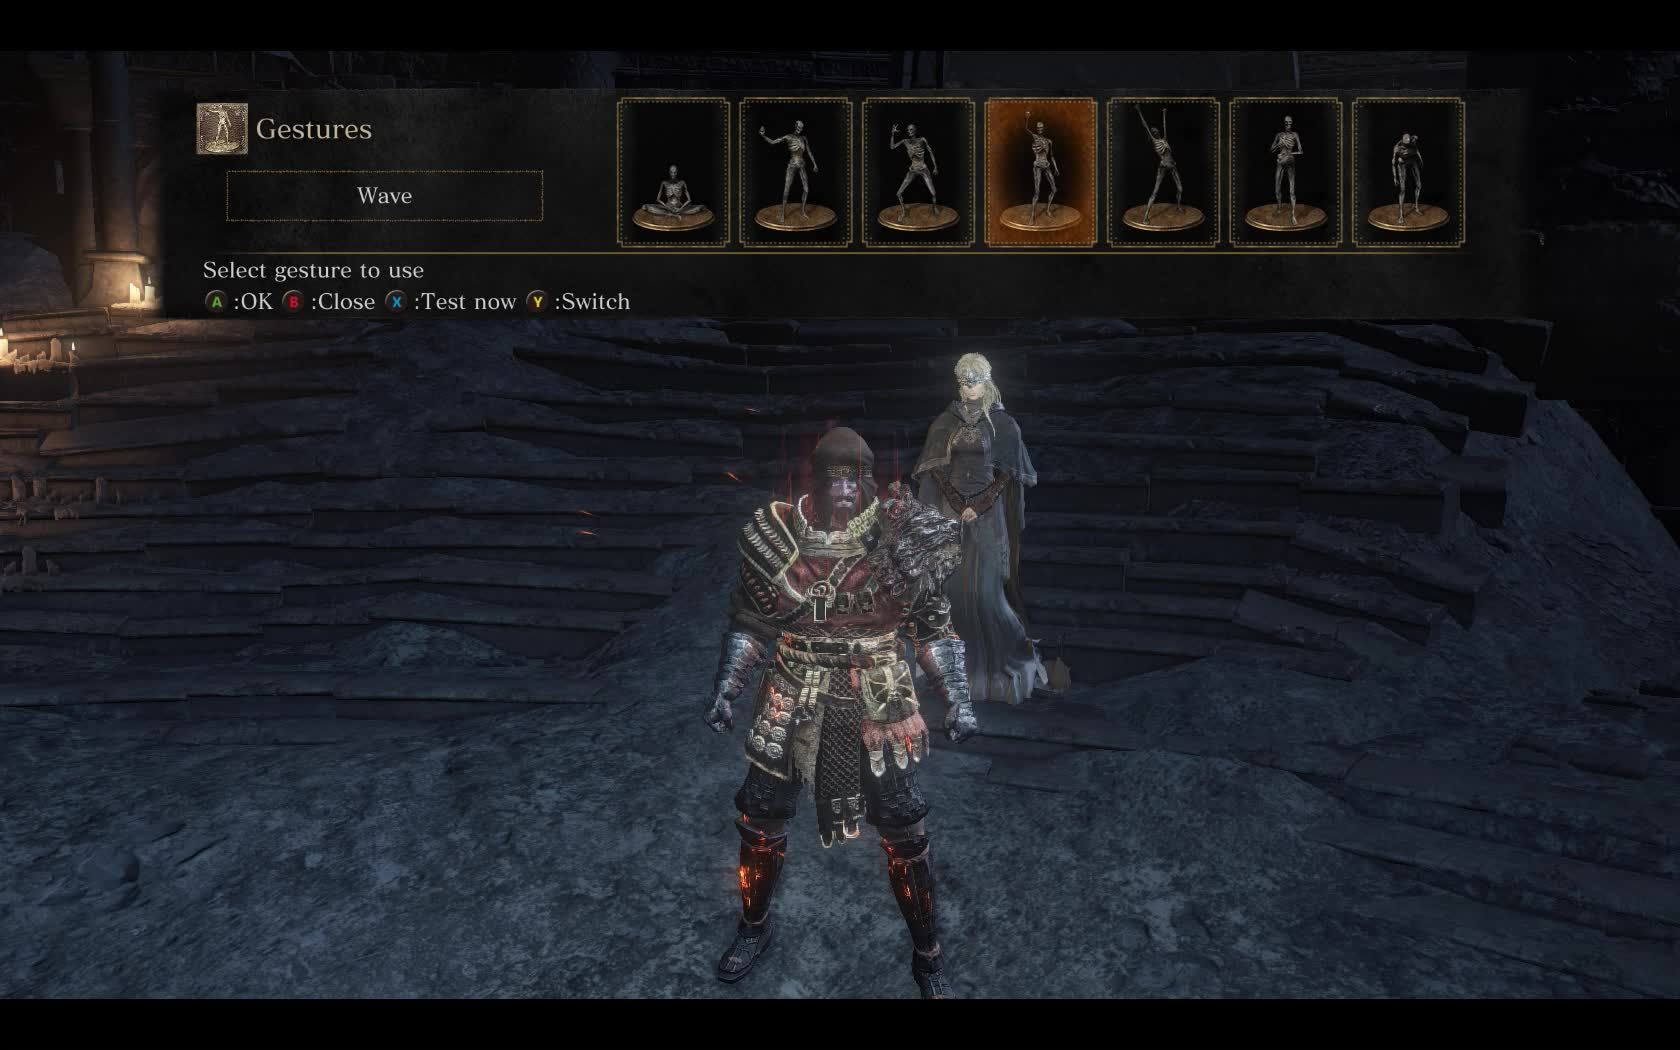 darksouls3, Did you know Fire Keeper waifu gestures you back? I did some gifs. (reddit) GIFs